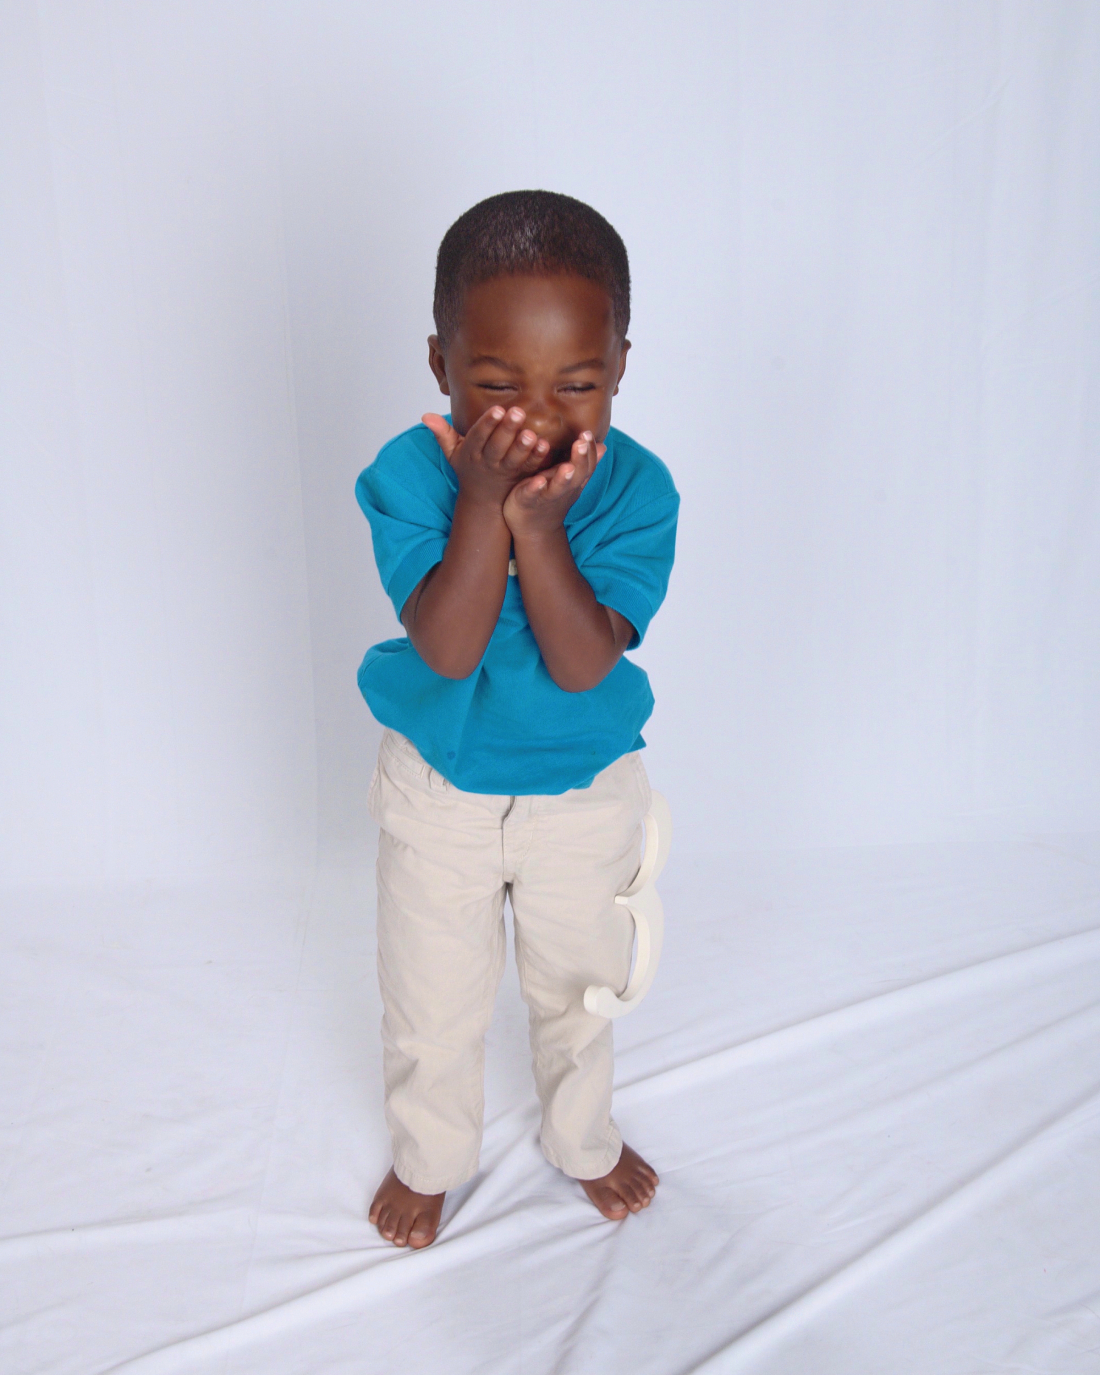 Isaiah covering face